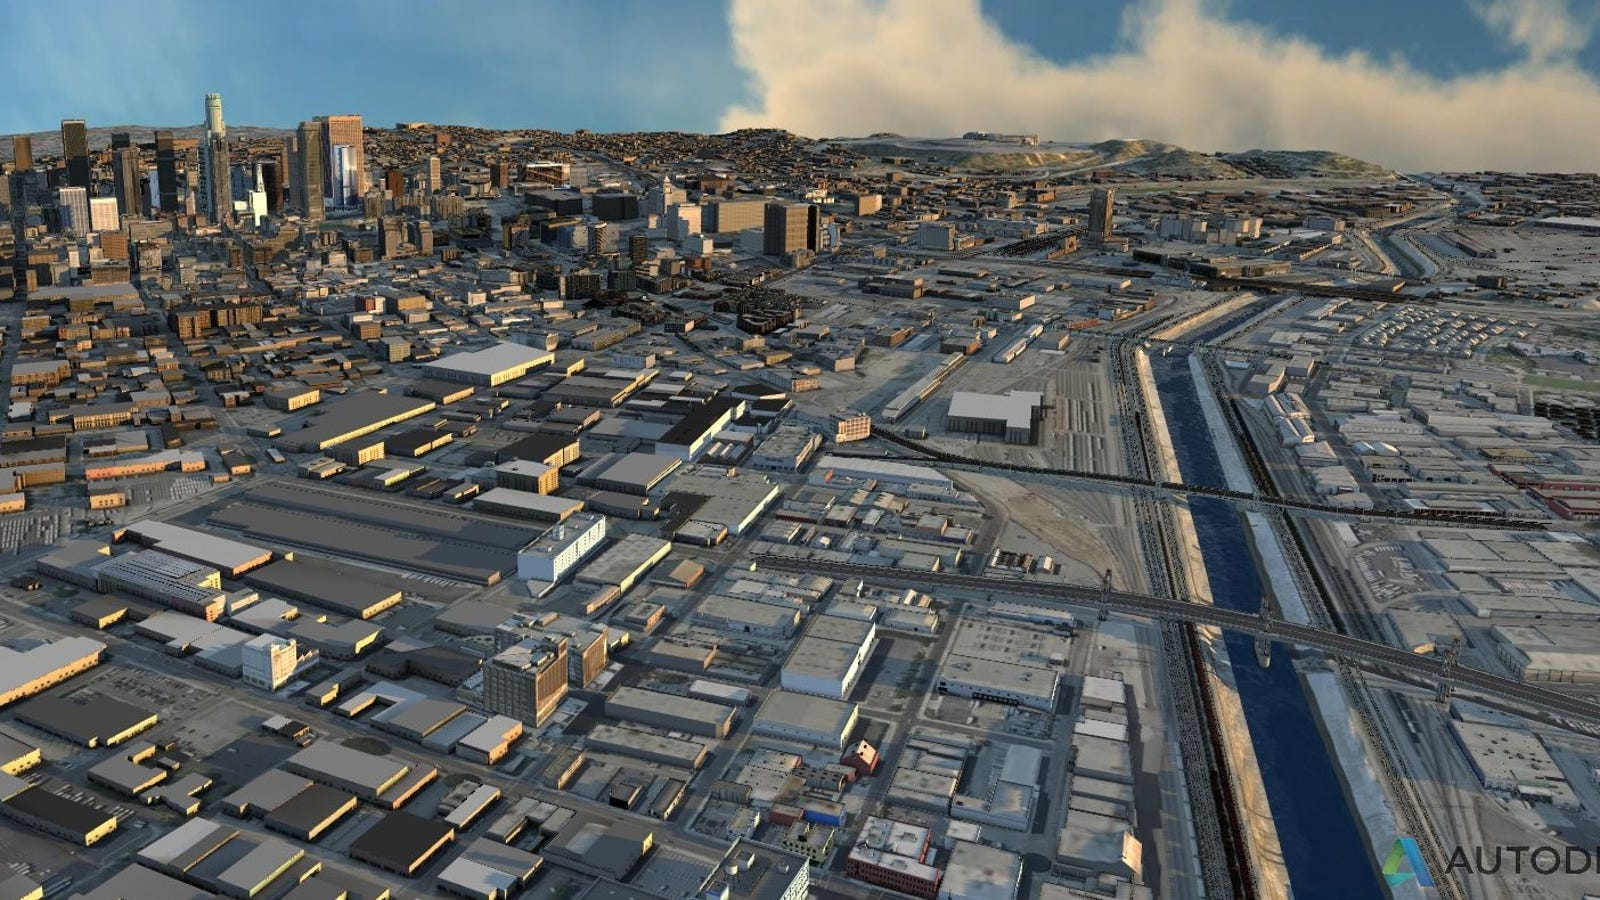 Why Today's Architects Build Digital Cities Instead of Scale Models